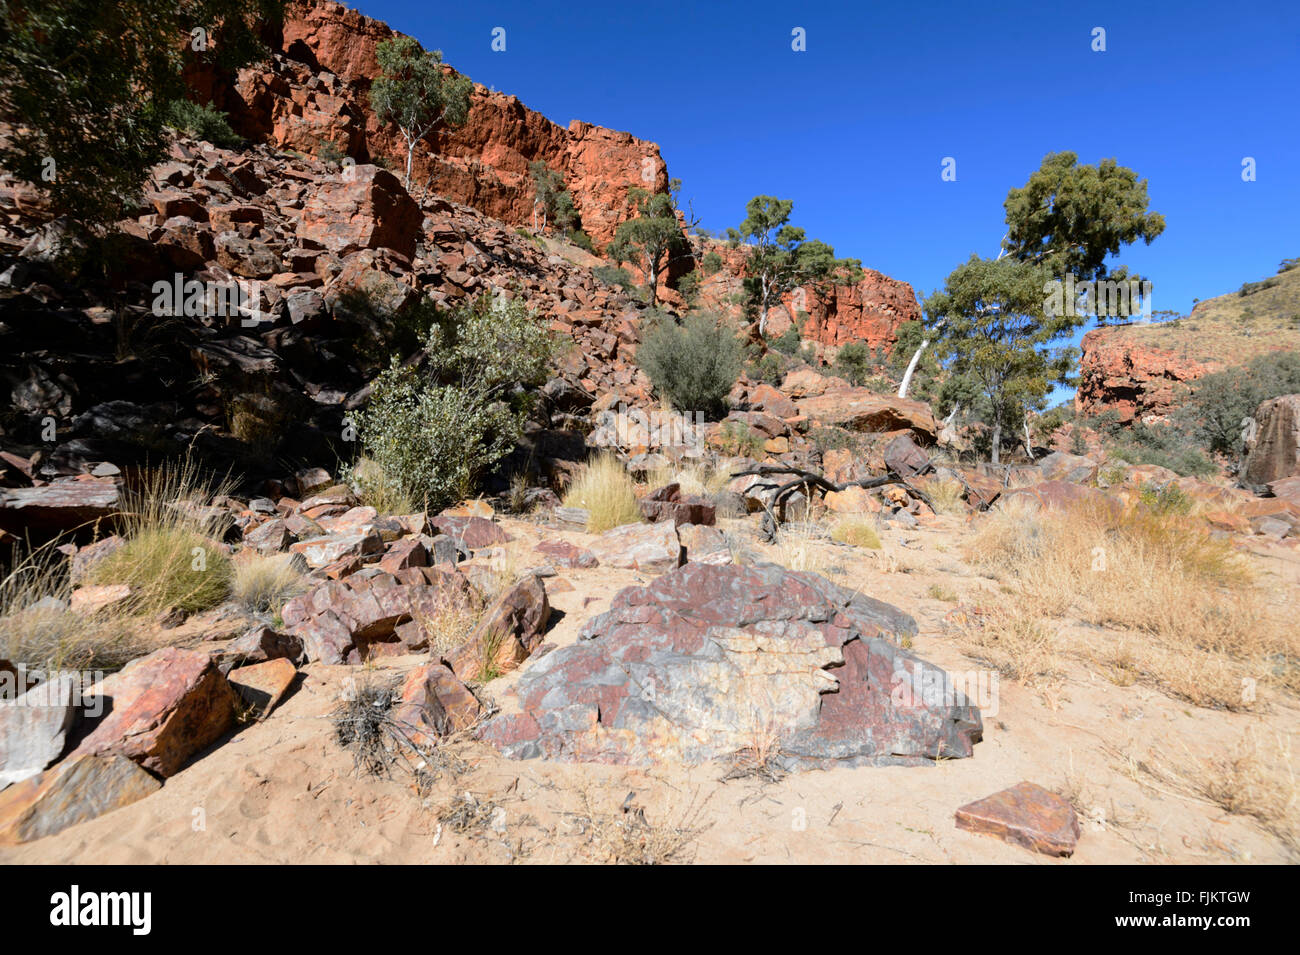 Ormiston Gorge, West MacDonnell Ranges, Northern Territory, Australia - Stock Image